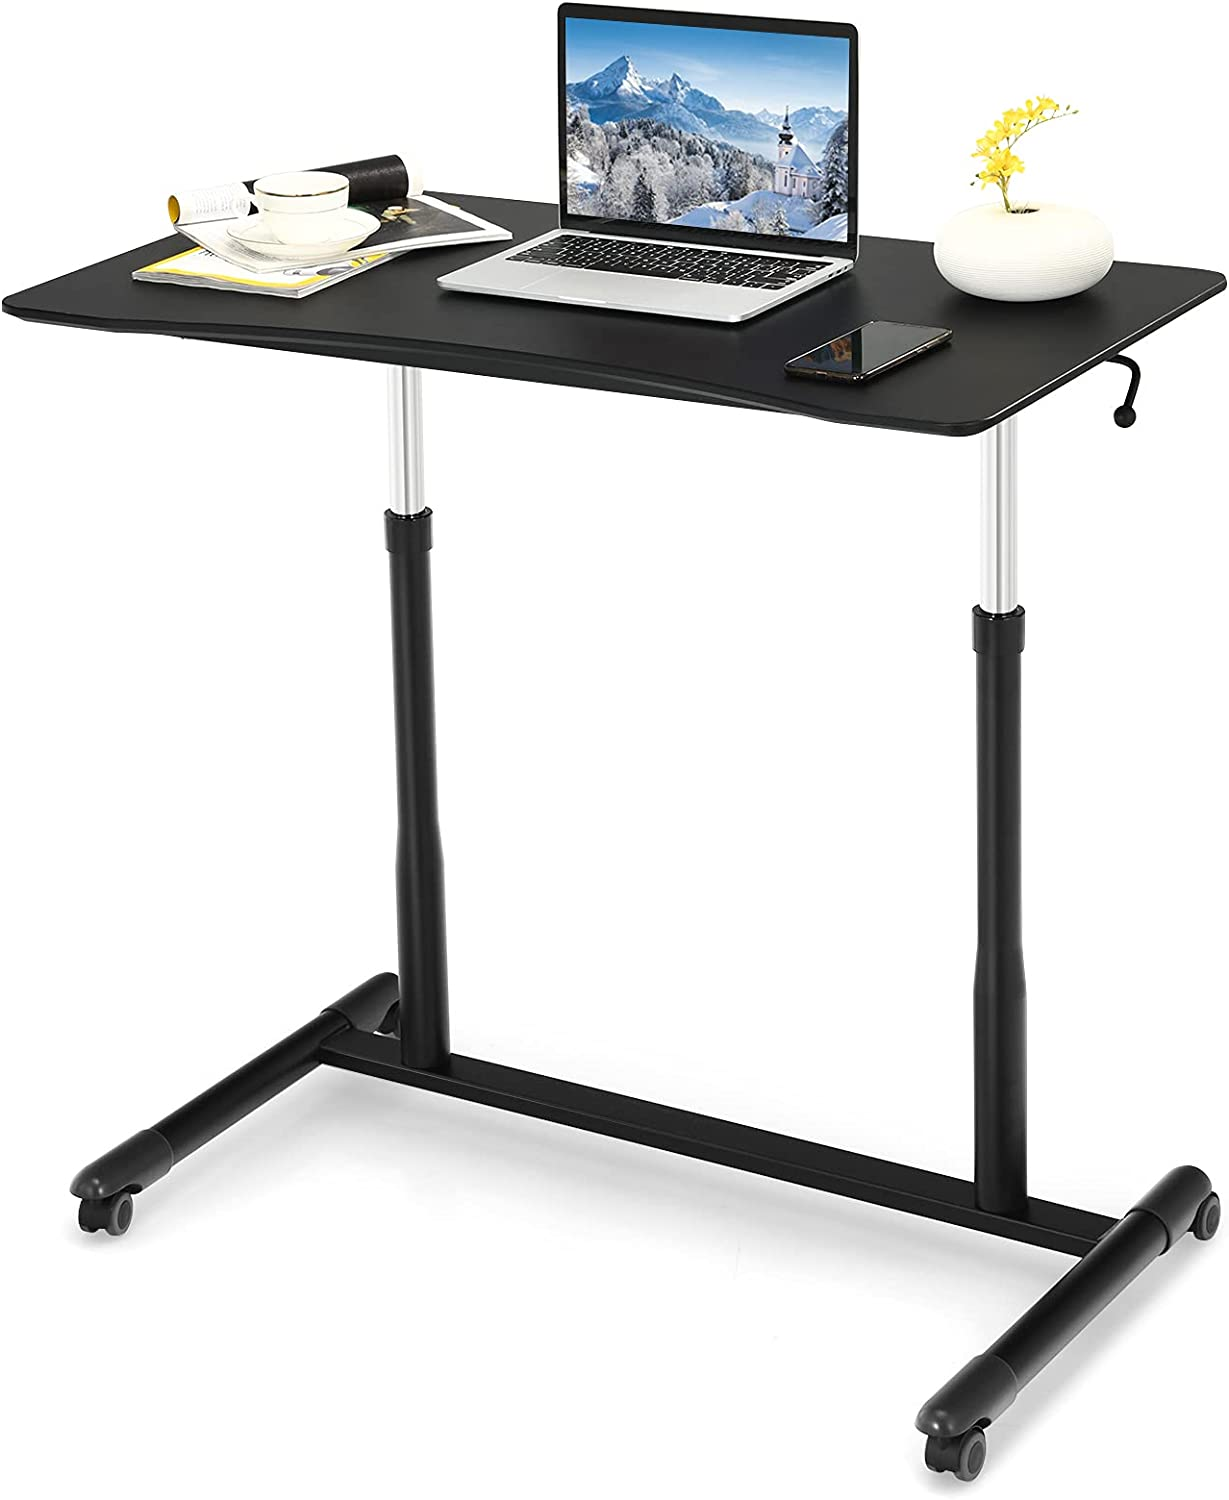 Max 72% OFF Rolling Mobile Standing Desk Sit to Stand Up Save money Height Adjustable S